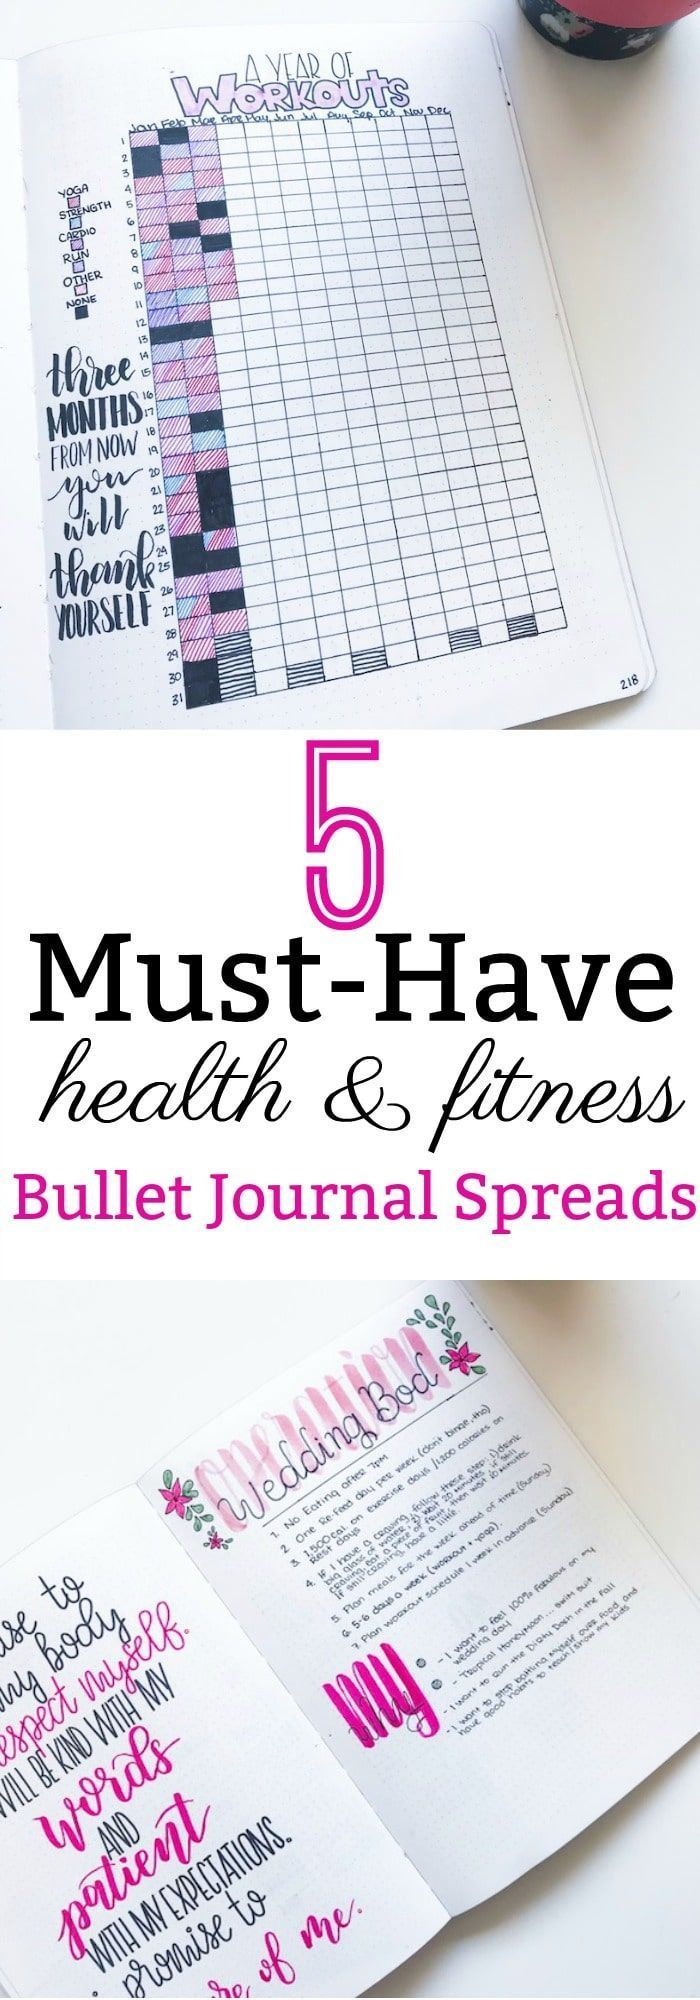 5 Must-Have Health and Fitness Bullet Journal Spreads ⋆ The Petite Planner -  5 Must-Have Health and...